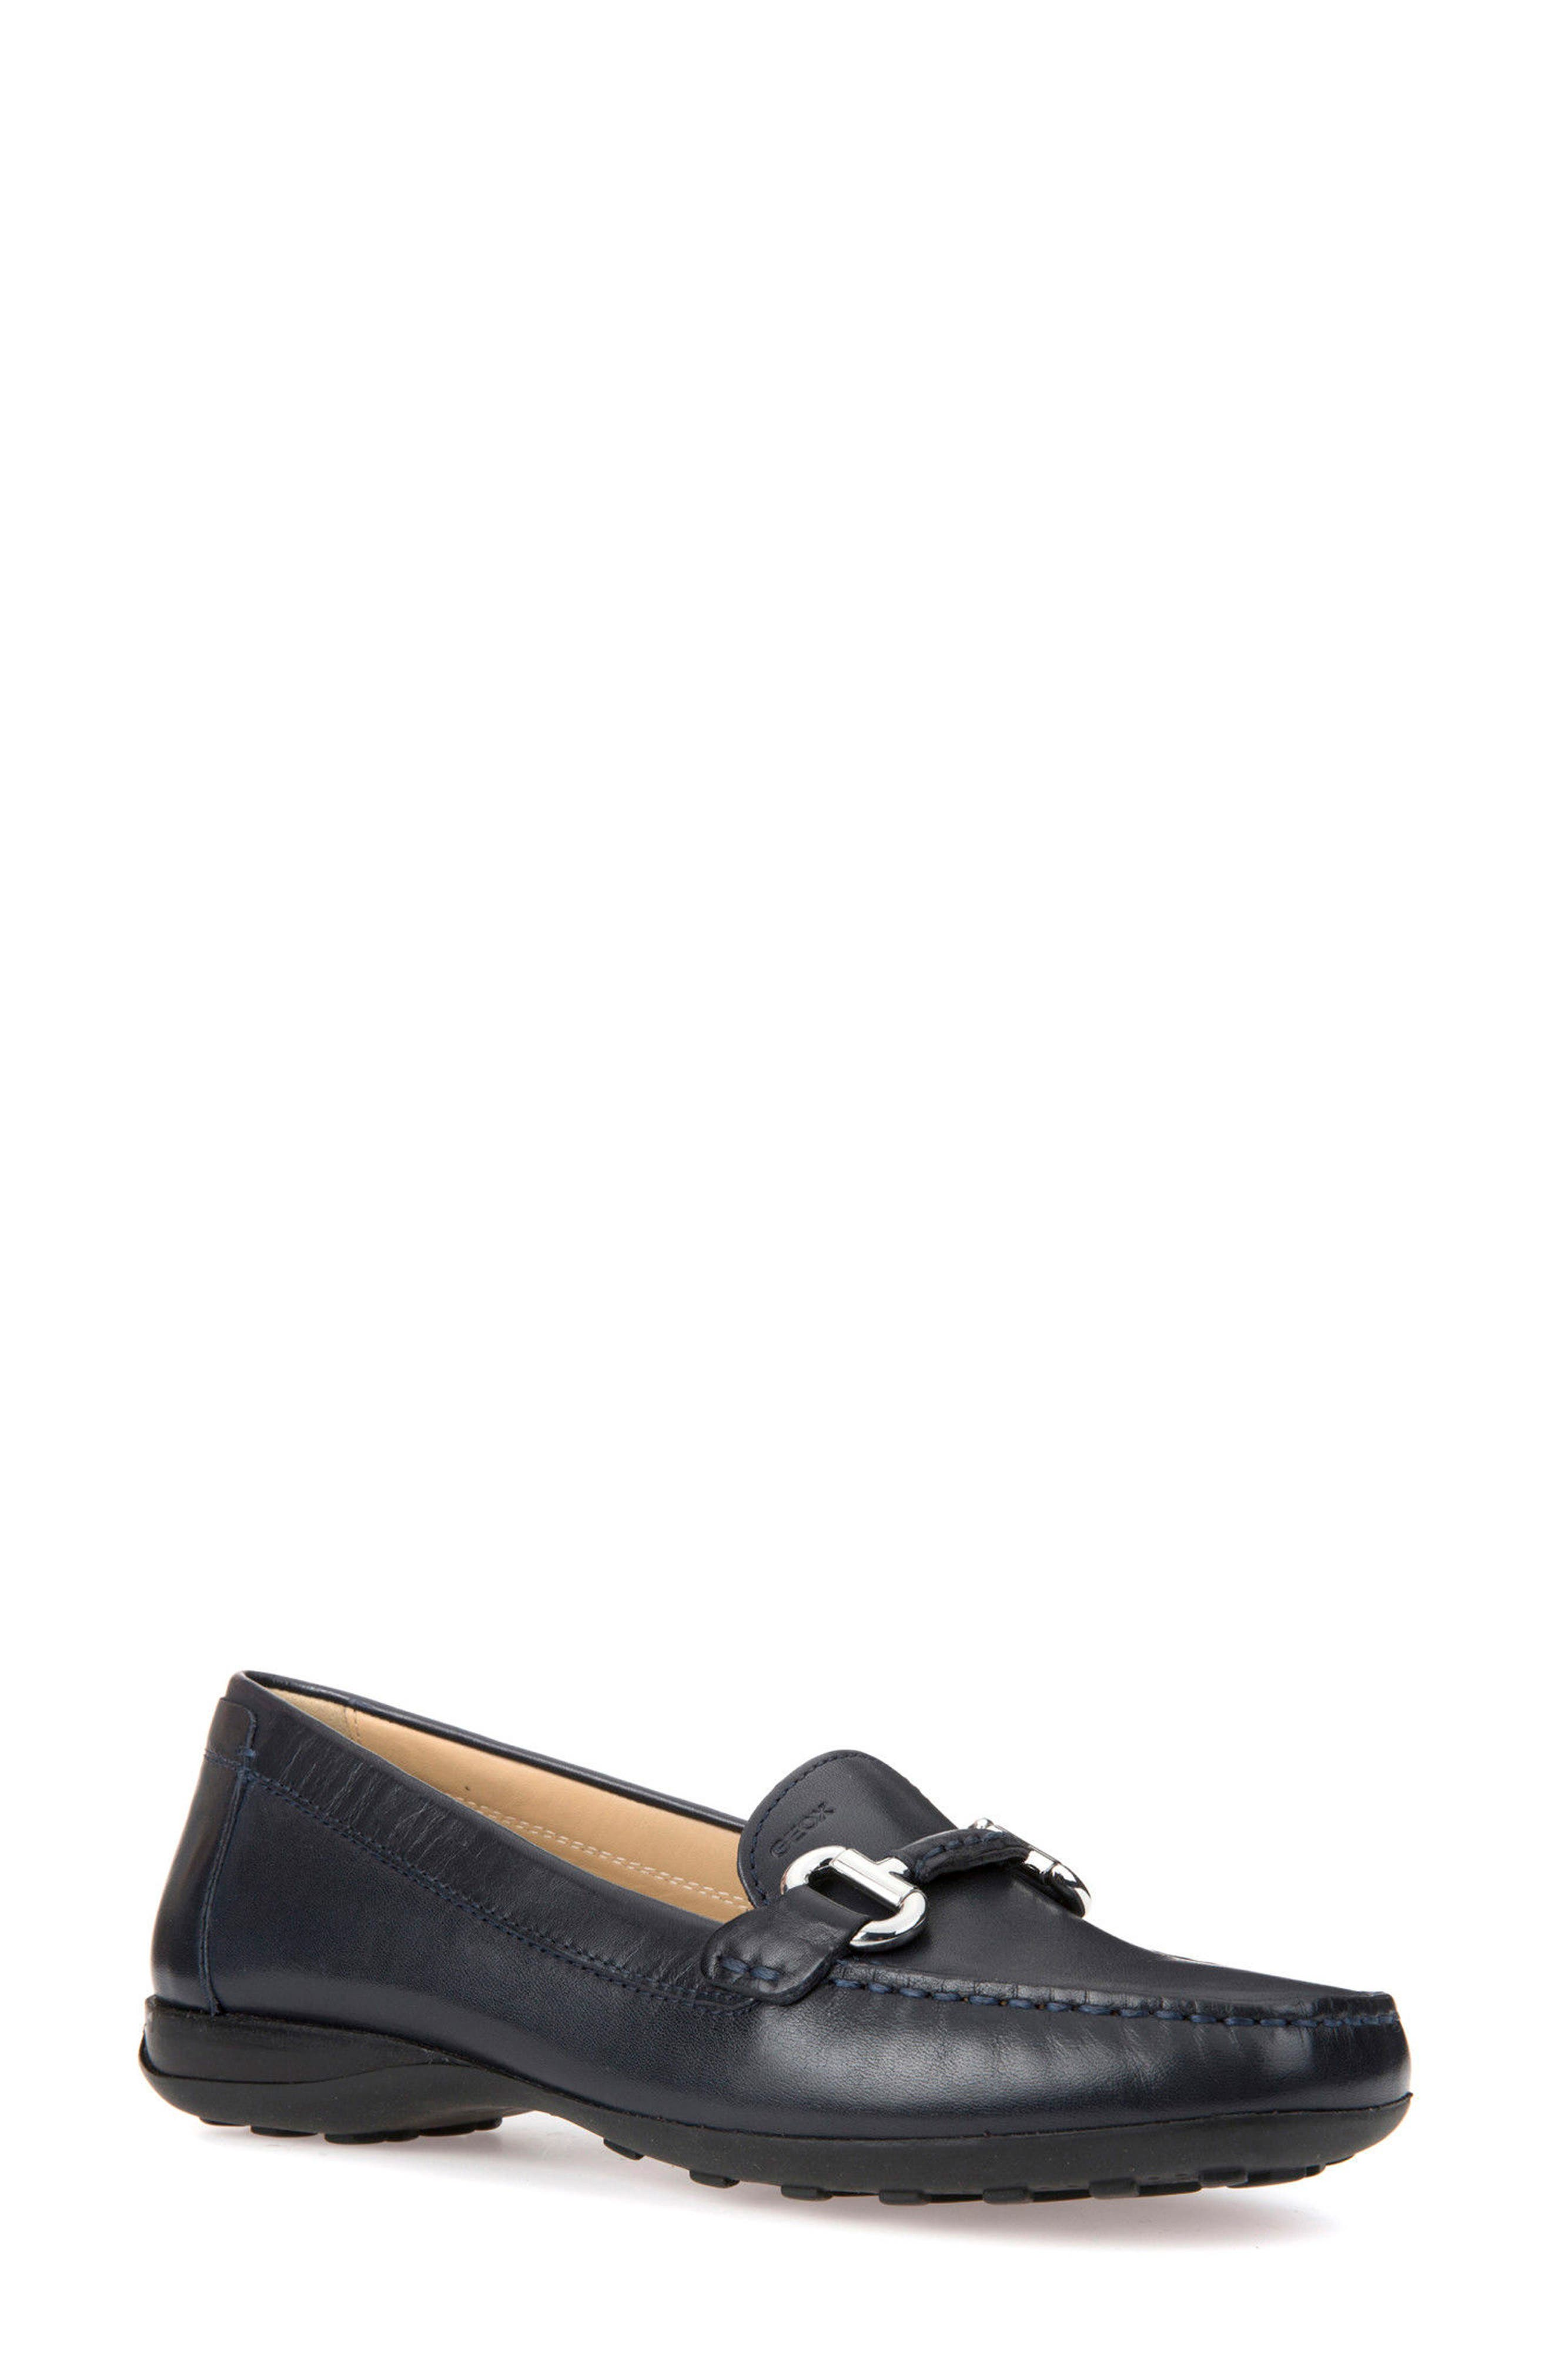 Main Image - Geox Euro 67 Loafer (Women)